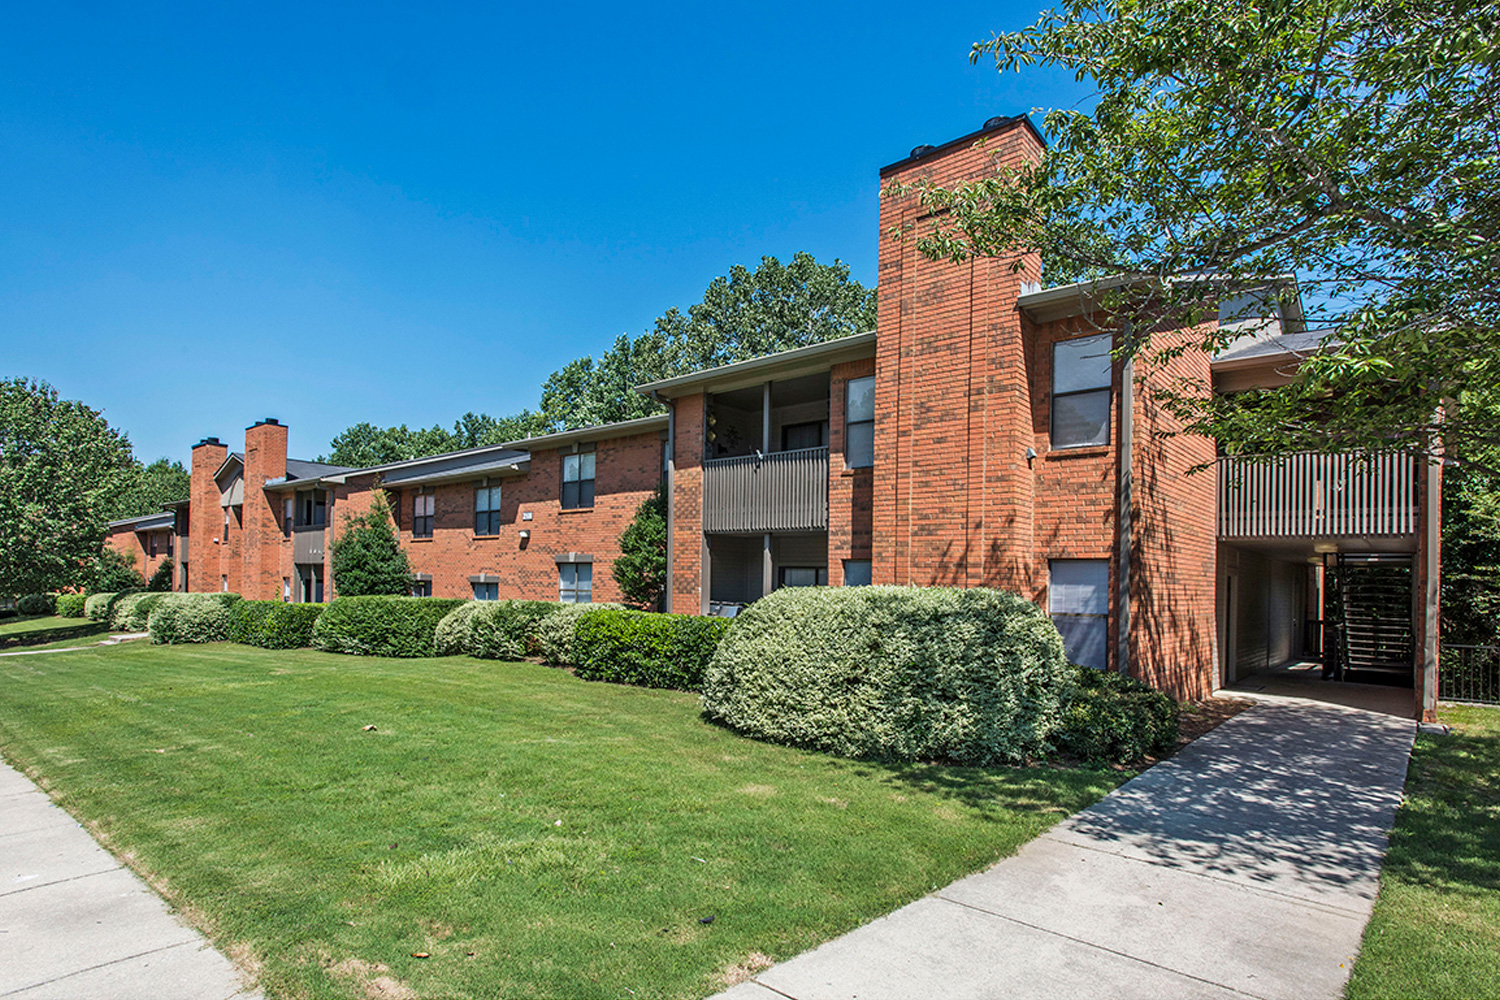 Balfour Beatty Communities Acquires Multifamily Property in Southern Birmingham